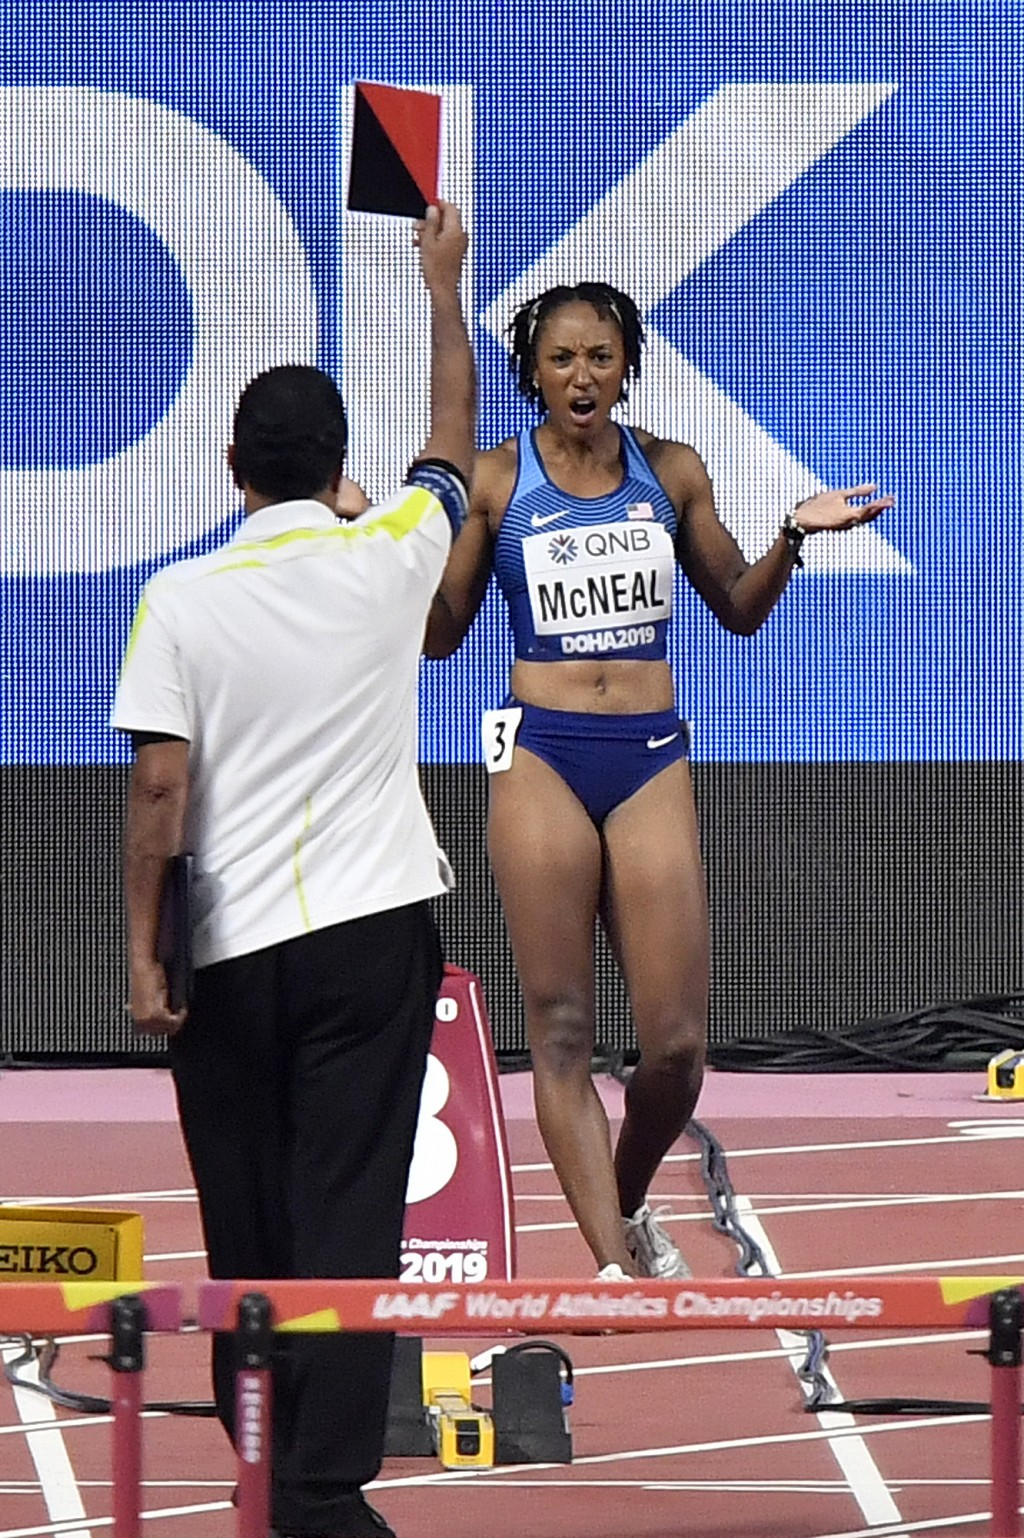 Brianna Mcneal, of the United States, is disqualified after a false start in the women's 100 meter hurdles heats during the World Athletics Championsh...